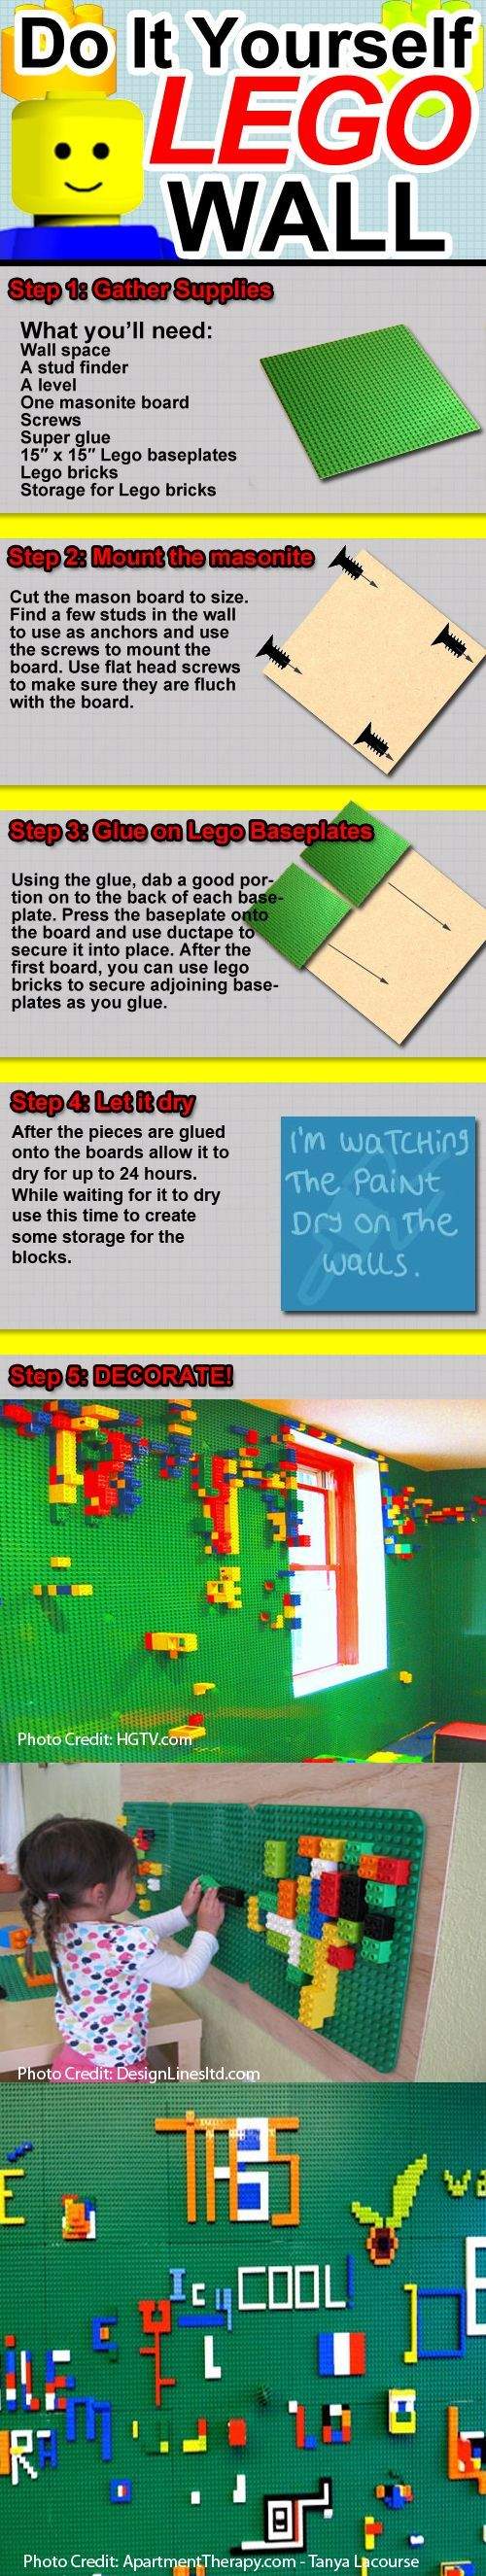 Do It Yourself Lego Wall, great idea for a play room! Peter